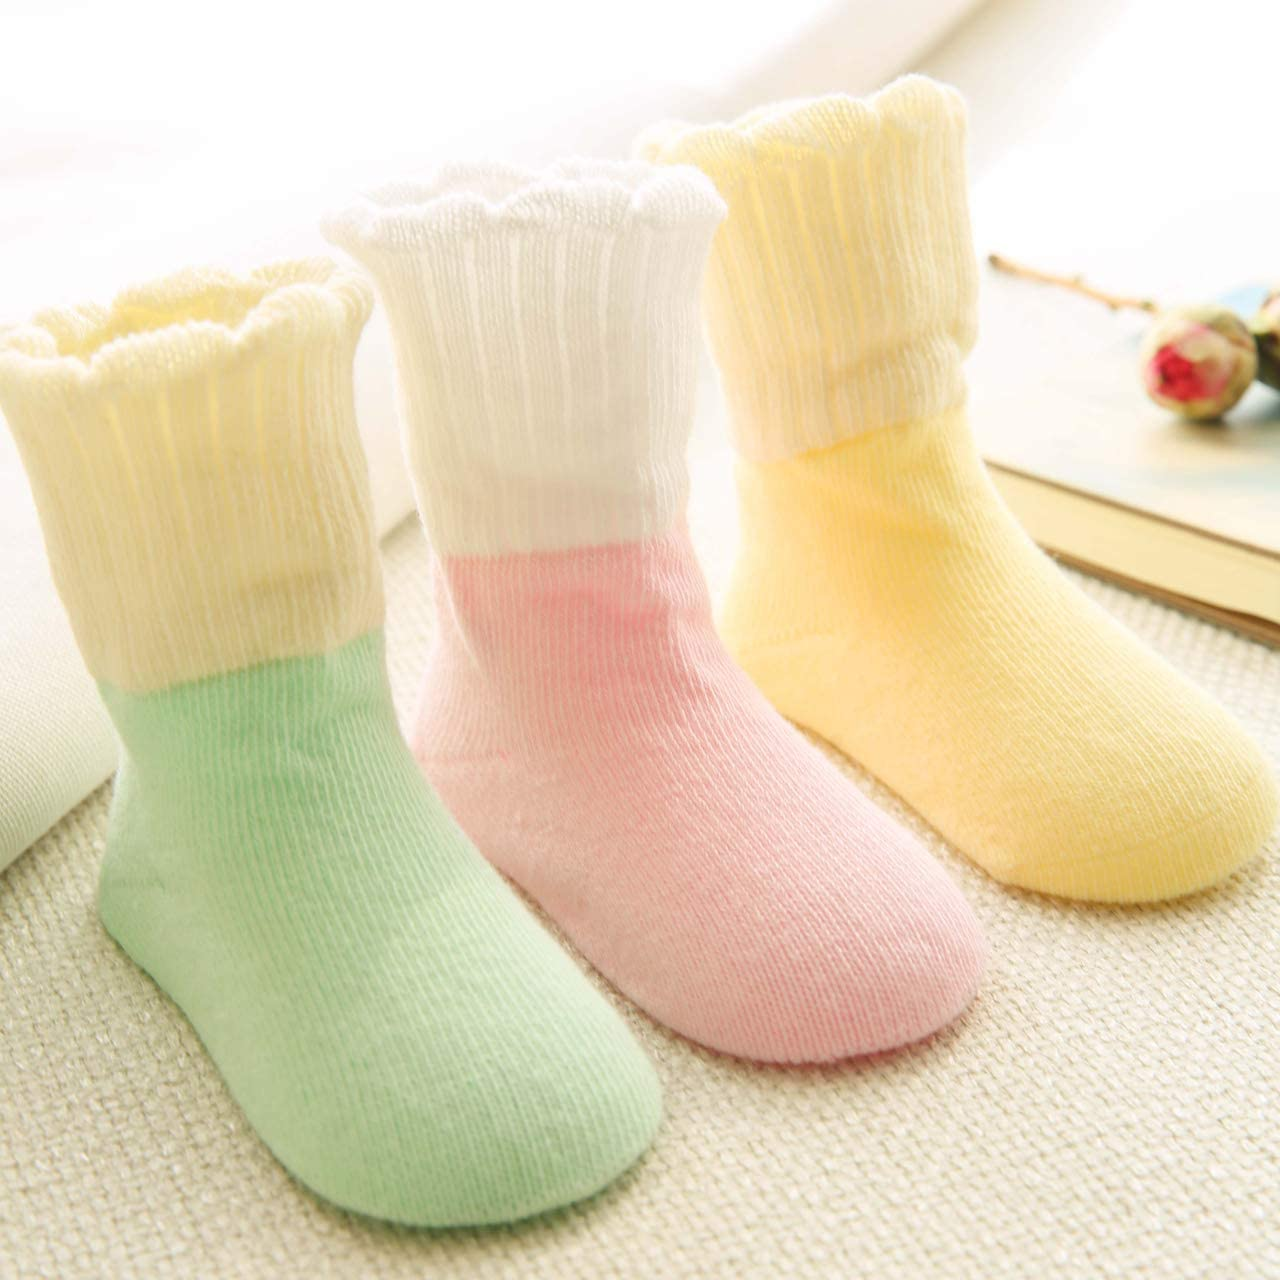 3 Pair Baby Socks Unisex Soft 0-5 Elastic Newborn Socks Organic Cotton Warm Cute Colorful Breathable Anti-Static Anti-Sensitive Socks Set for Baby Girl Boy Gift for Infant Toddler Baby Years